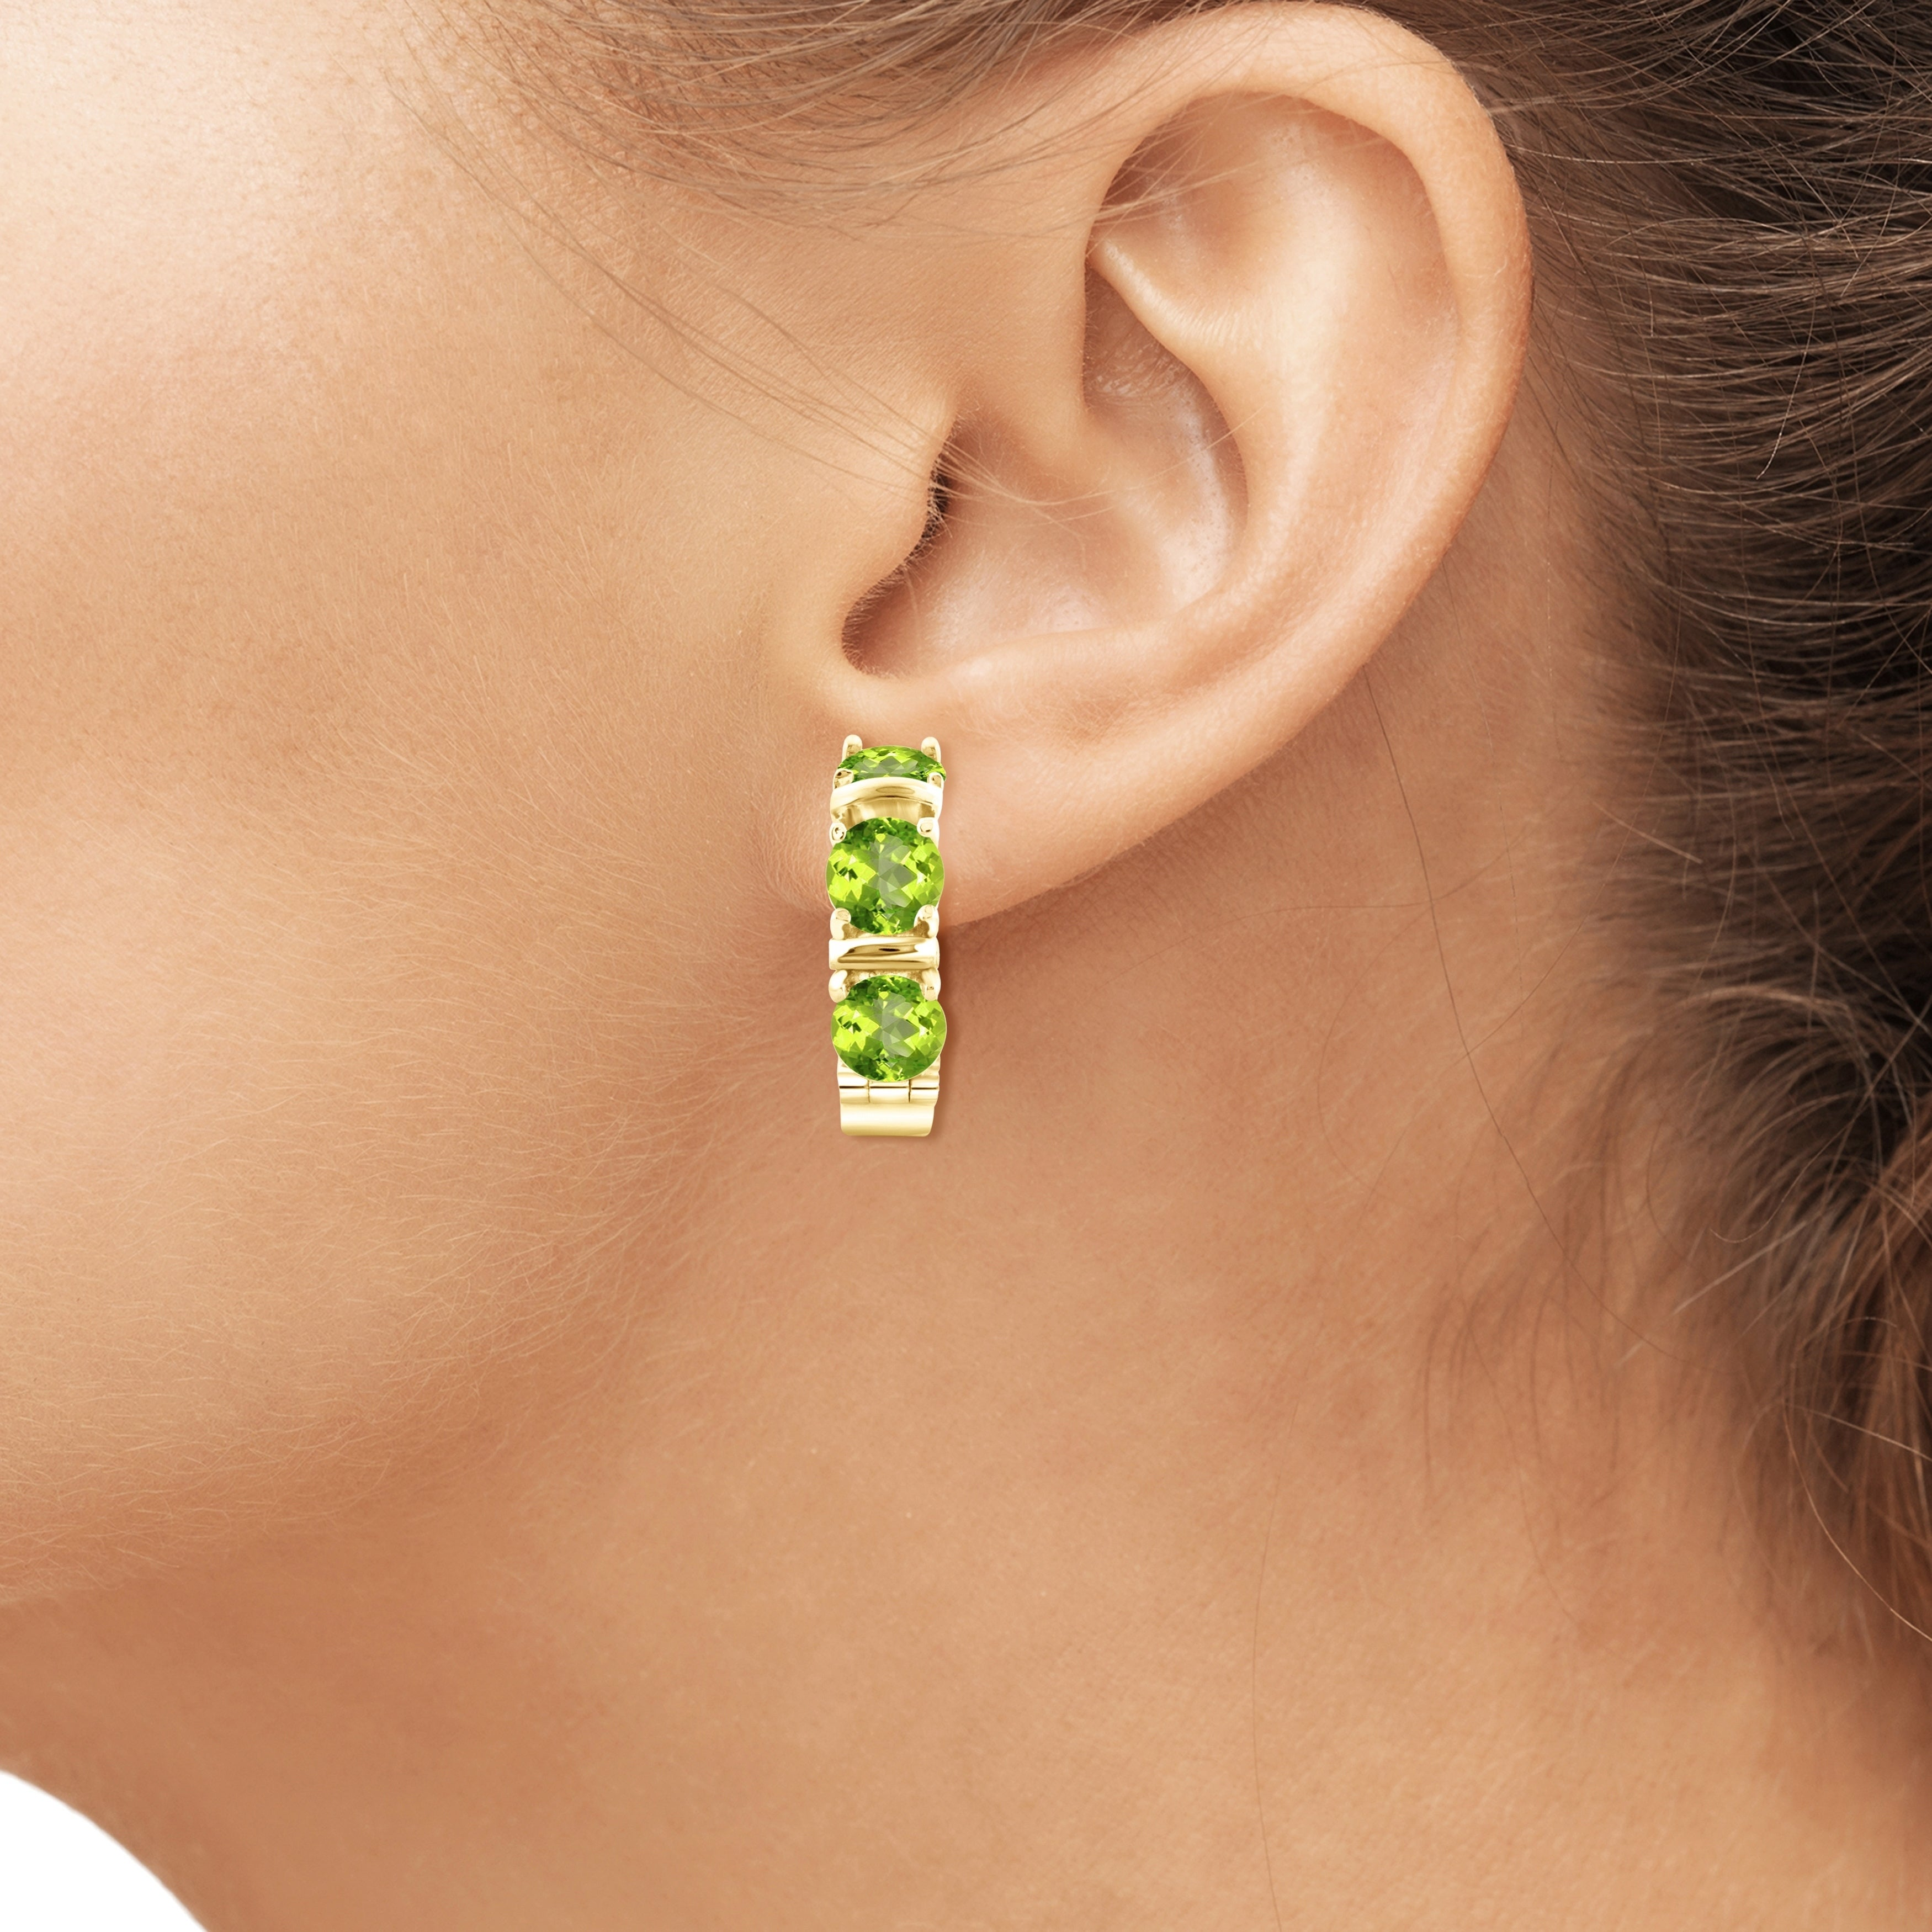 Jewelonfire 4 50 Carat Genuine Peridot Hoop Earring In Sterling Silver Free Shipping Today 18057468